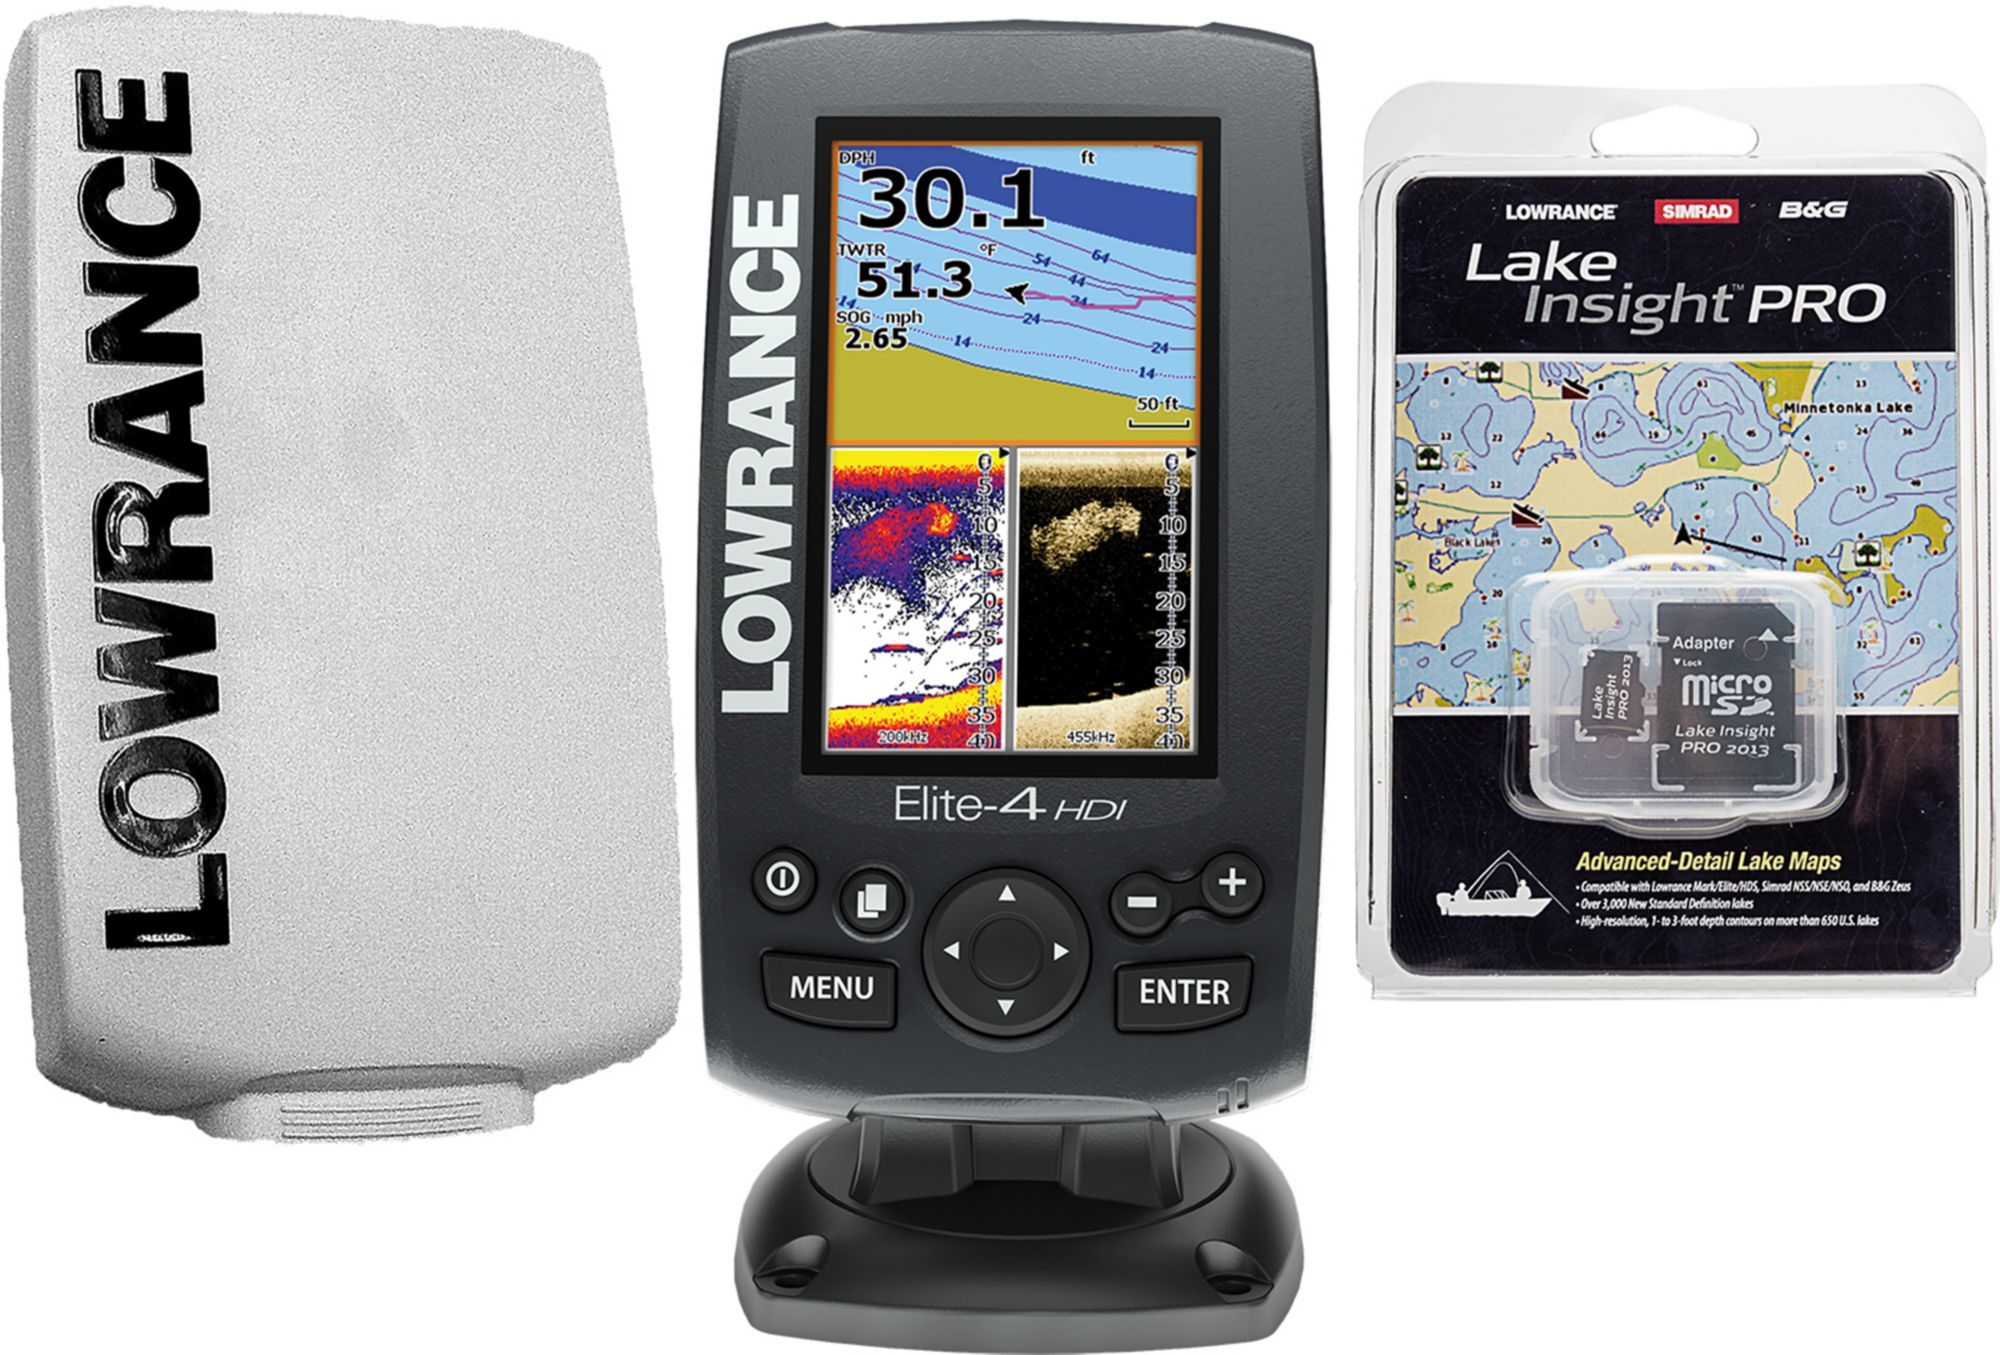 Lowrance Elite-4 HDI Fish Finder/Chartplotter with Lake